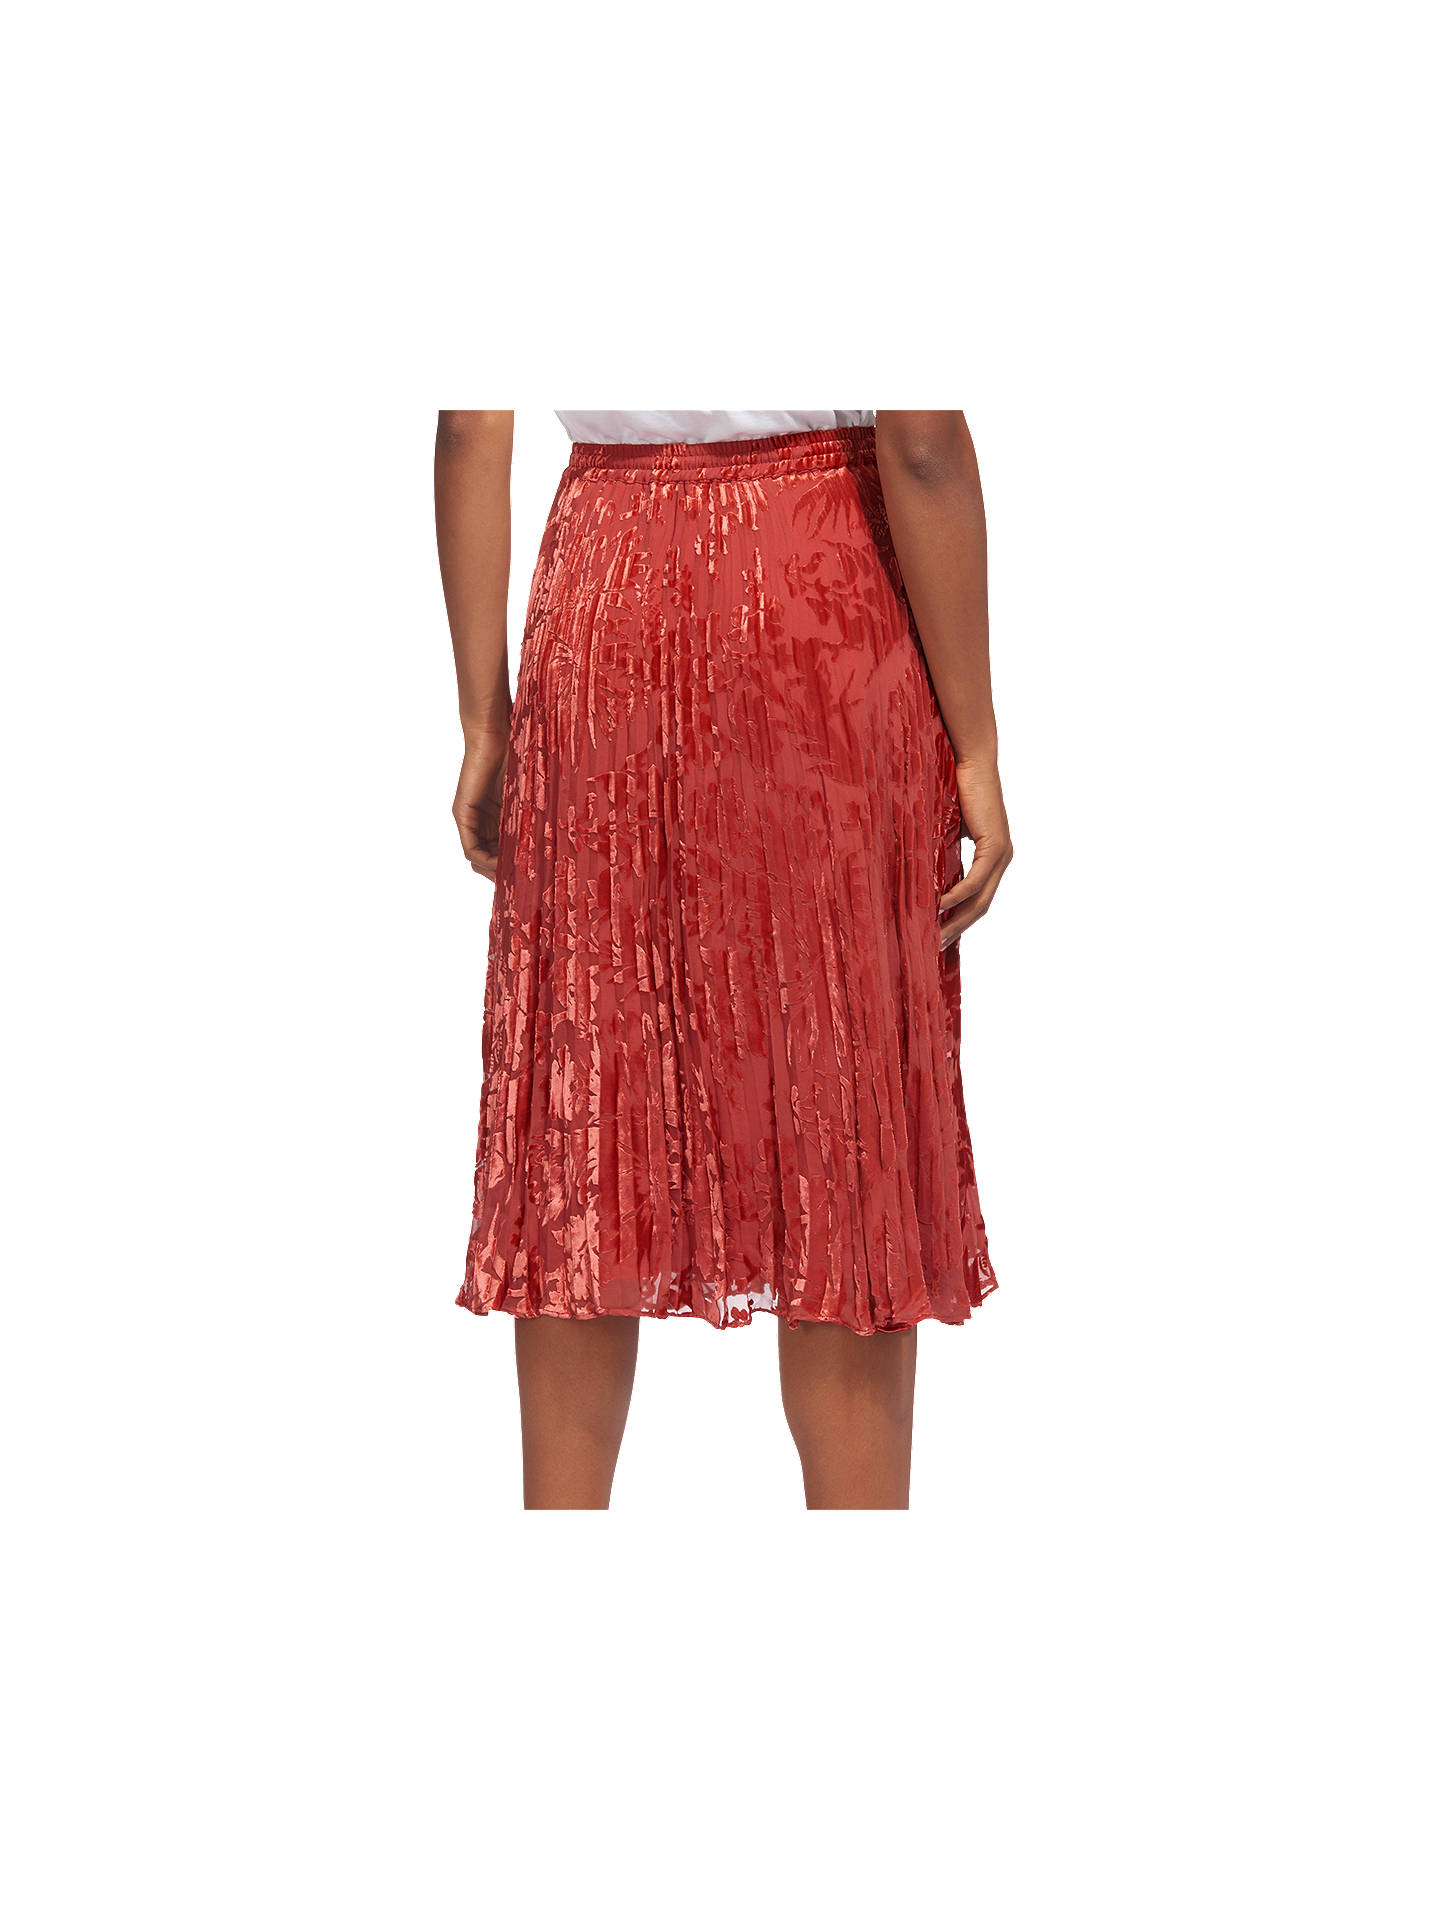 4f078297b6 ... Buy Whistles Harlow Pleated Devore Skirt, Orange, 6 Online at  johnlewis.com ...